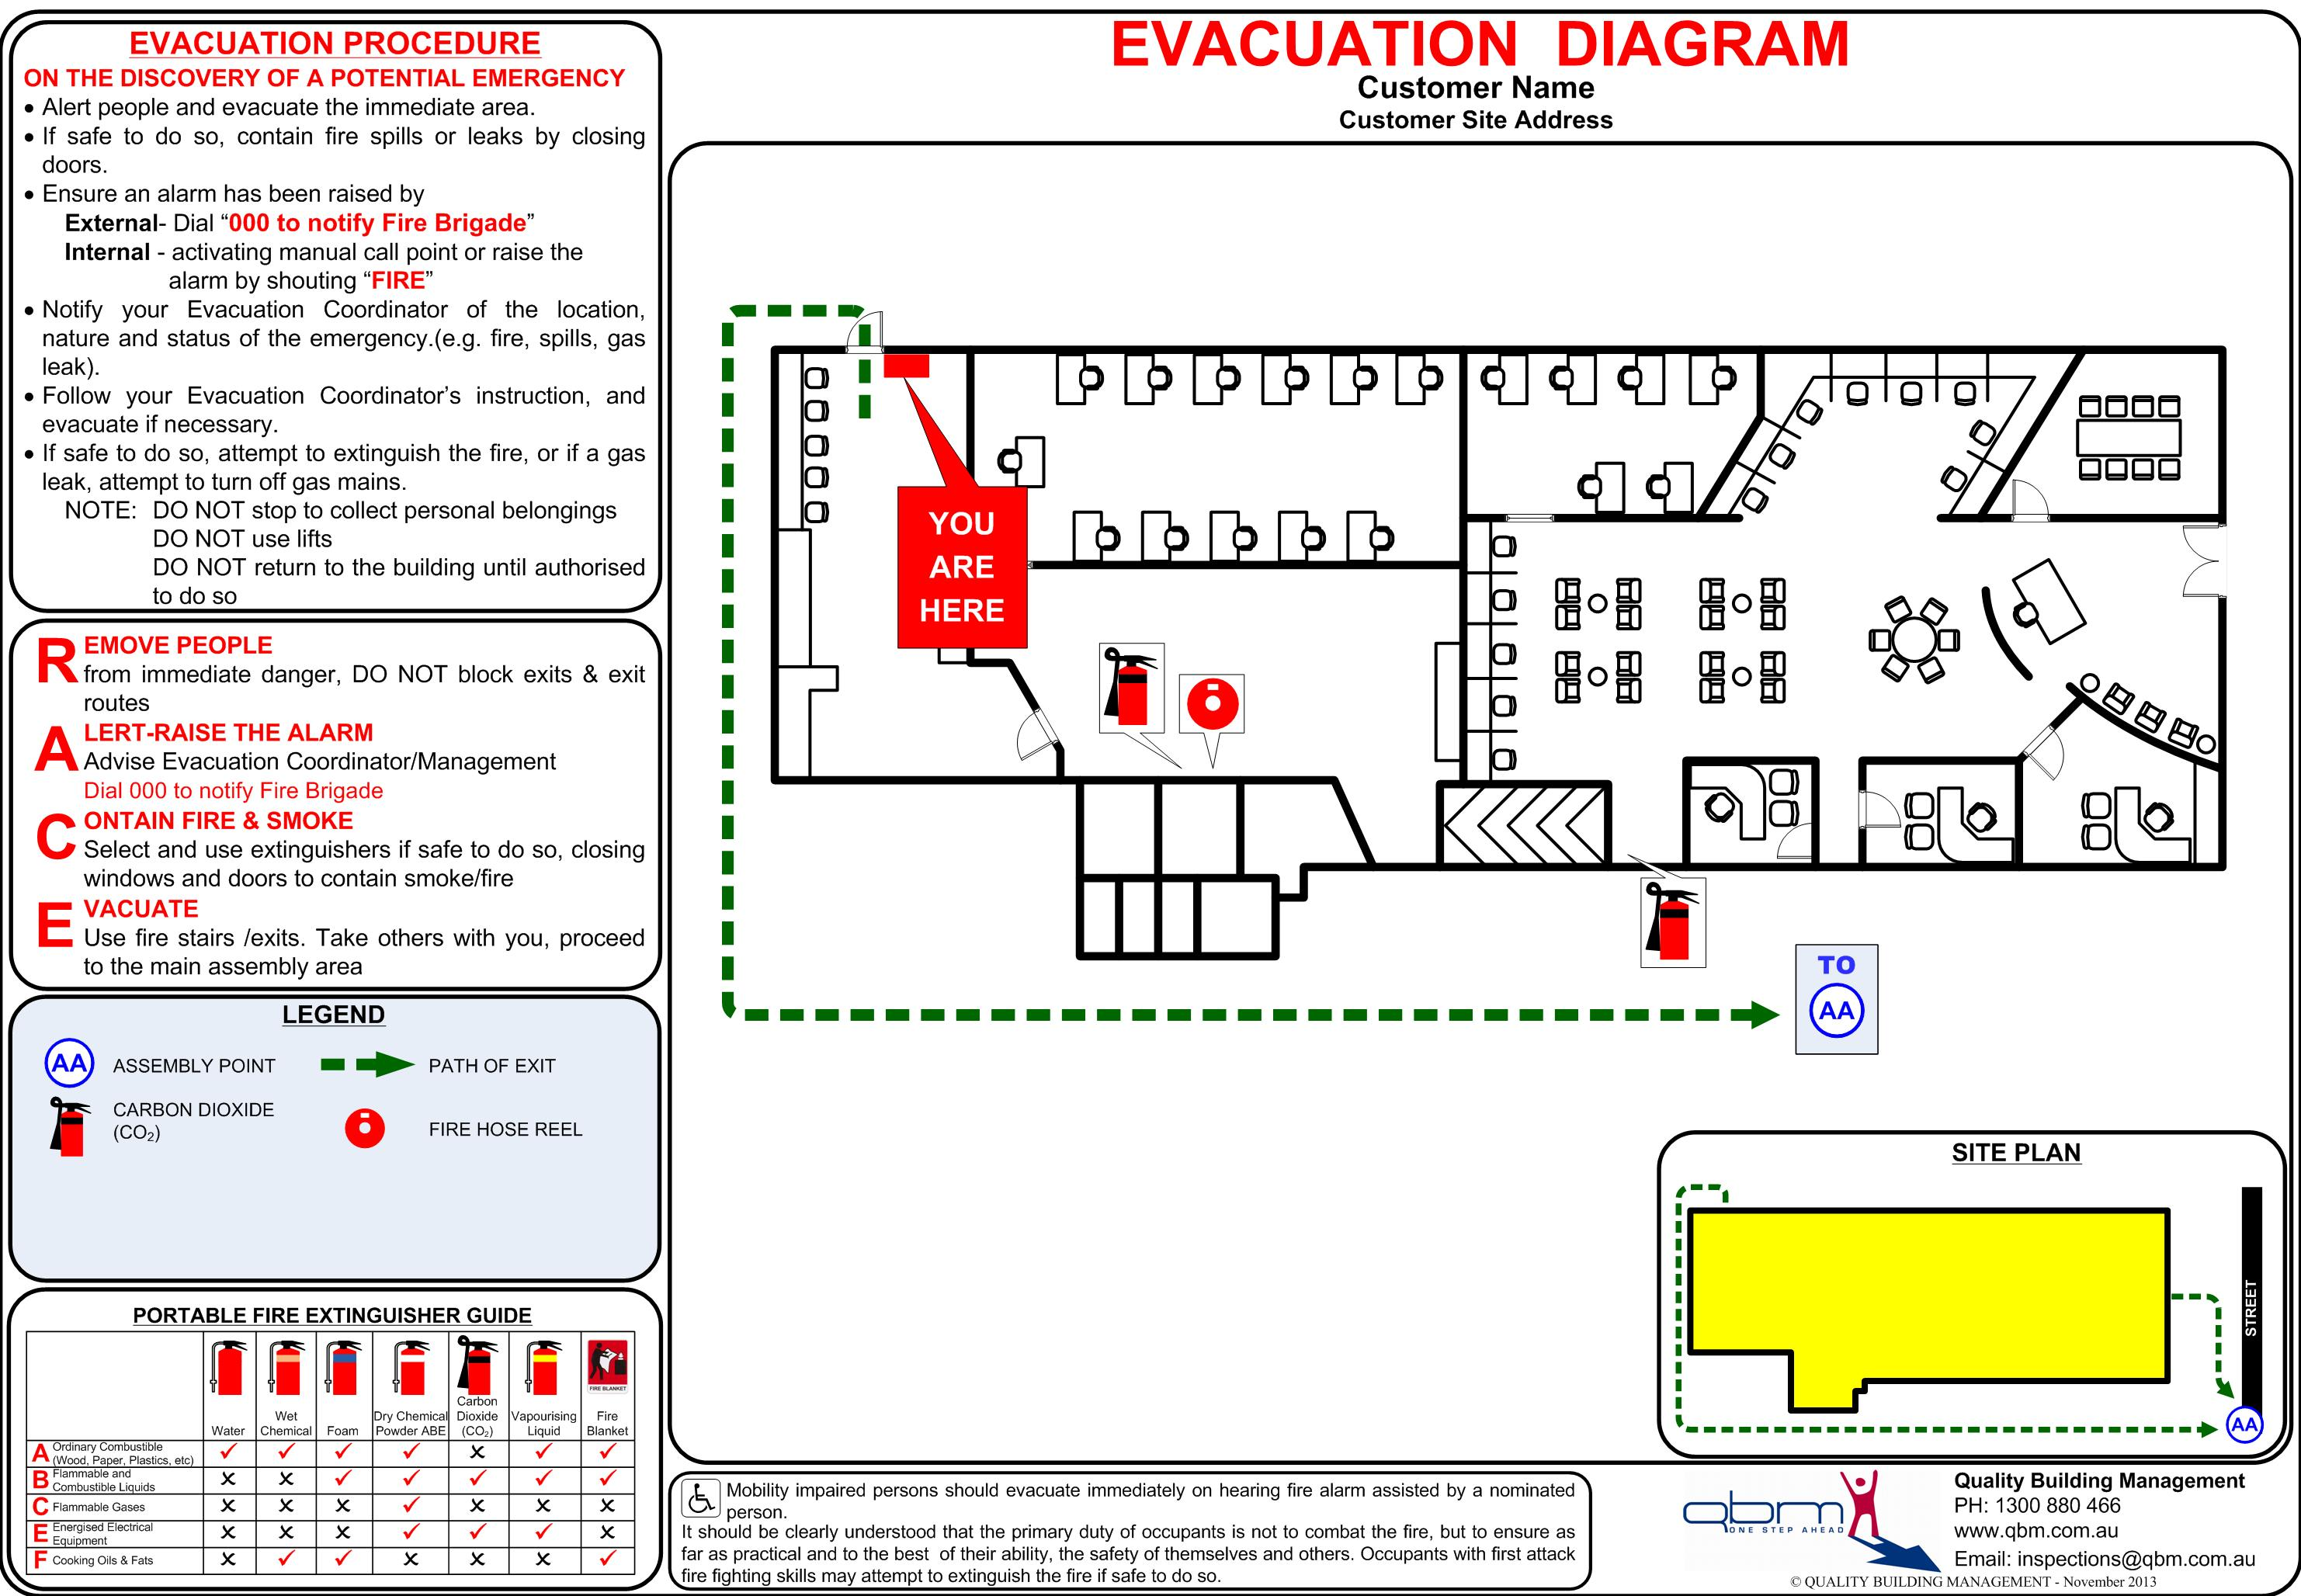 emergency evacuation diagrams   qbm   asbestos inspections    evacuation diagram